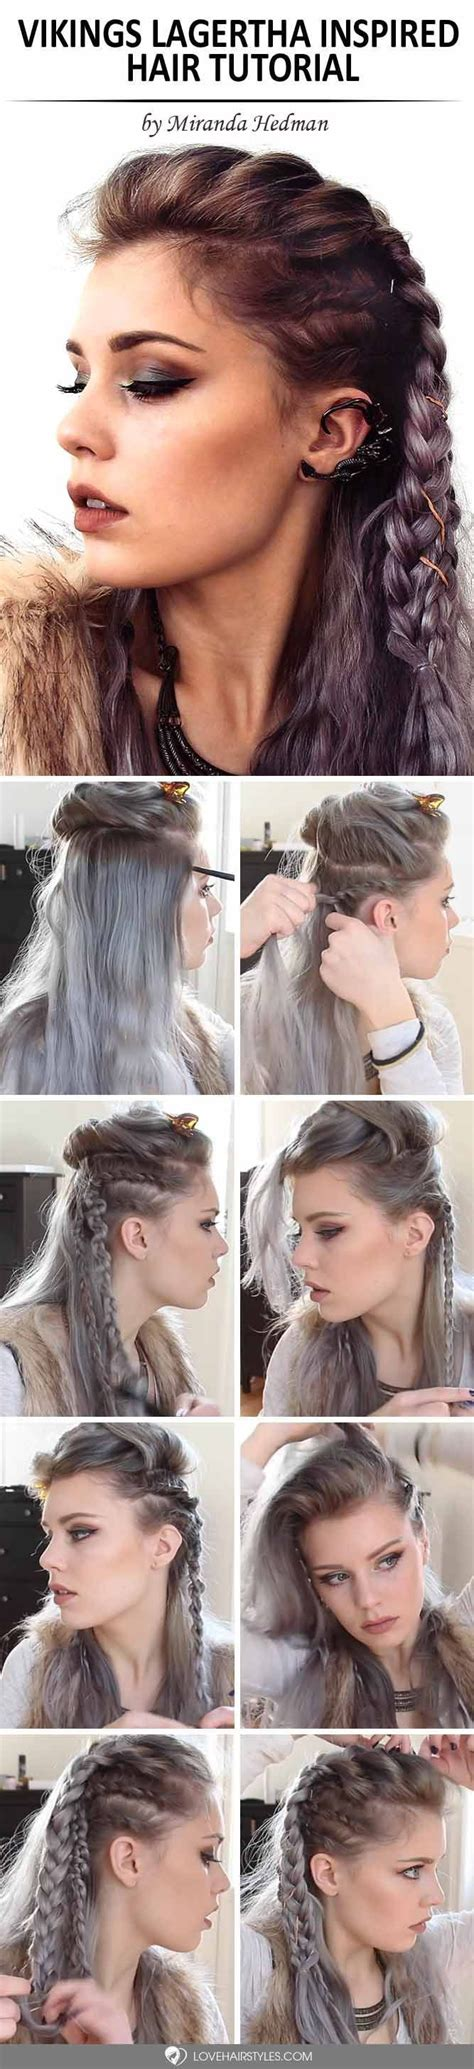 lagertha hair tutorial 2565 best braided hairstyles images on pinterest